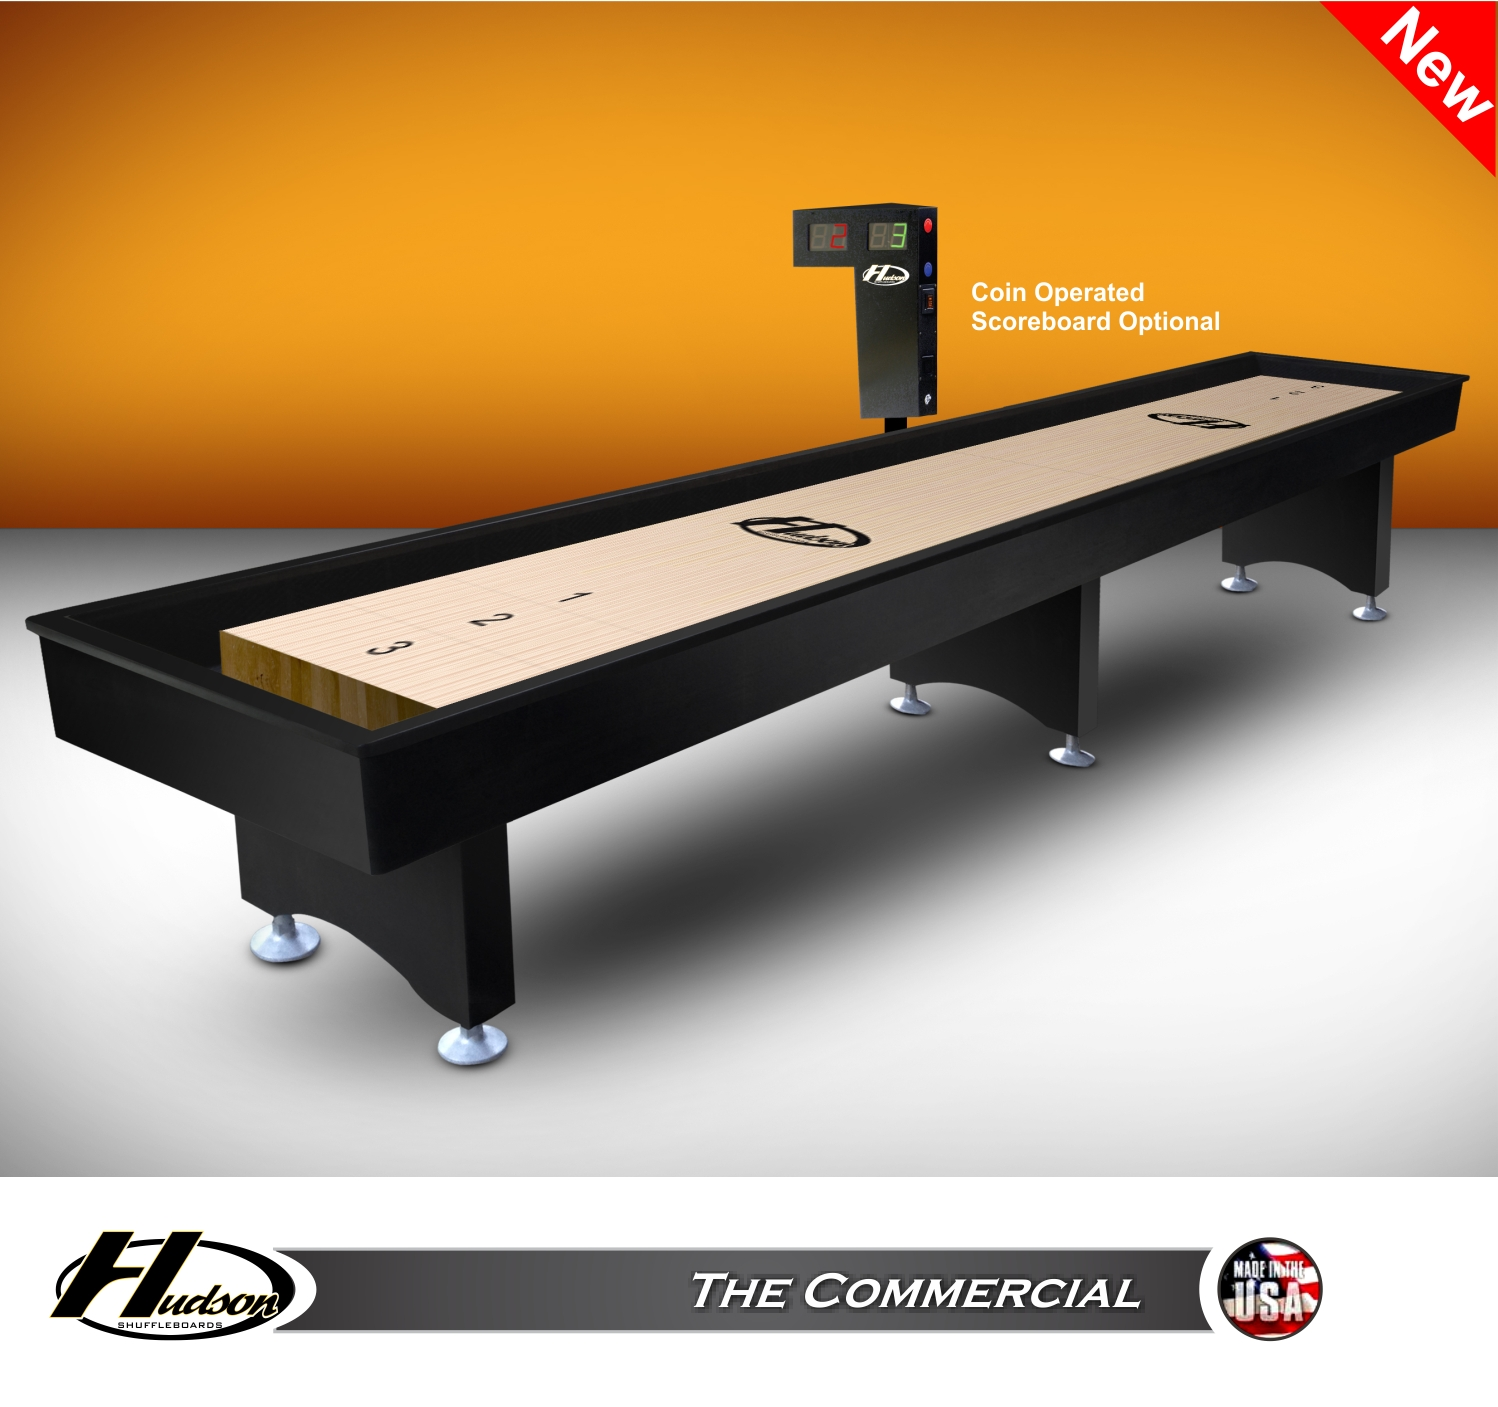 22' The Commercial Shuffleboard Table